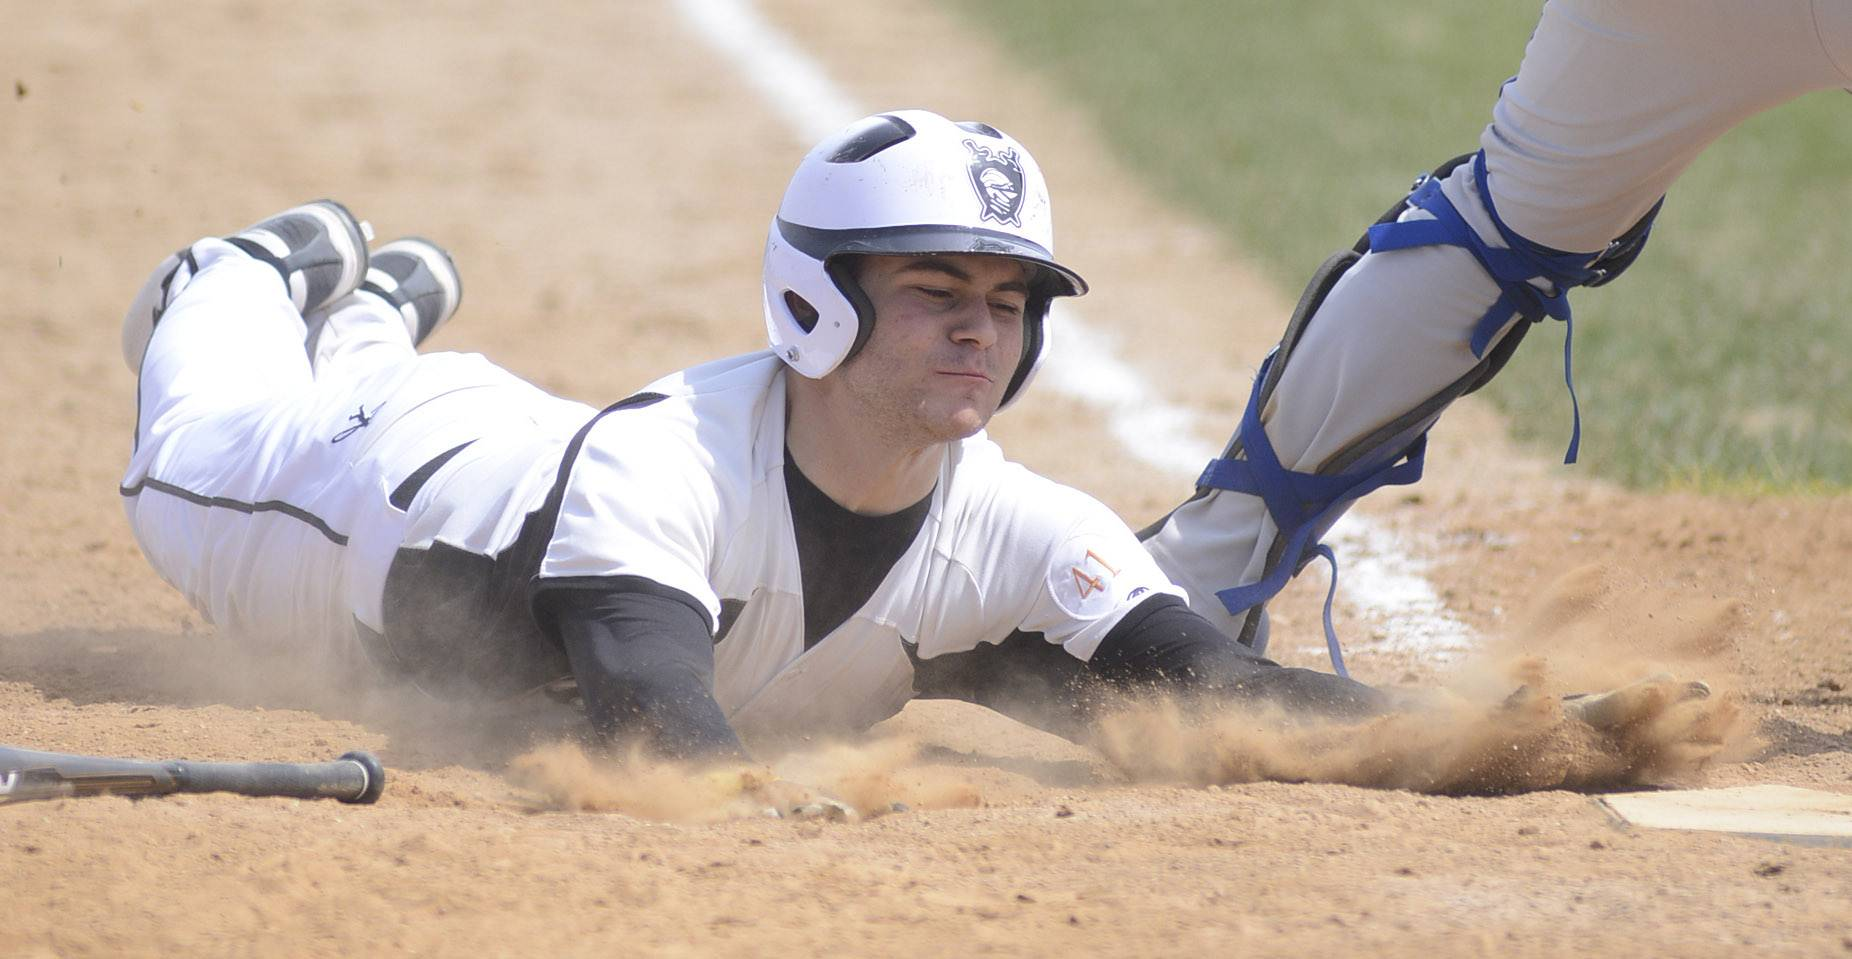 Kaneland's Joe Panico slides into home plate to break a tie against Geneva on Saturday.